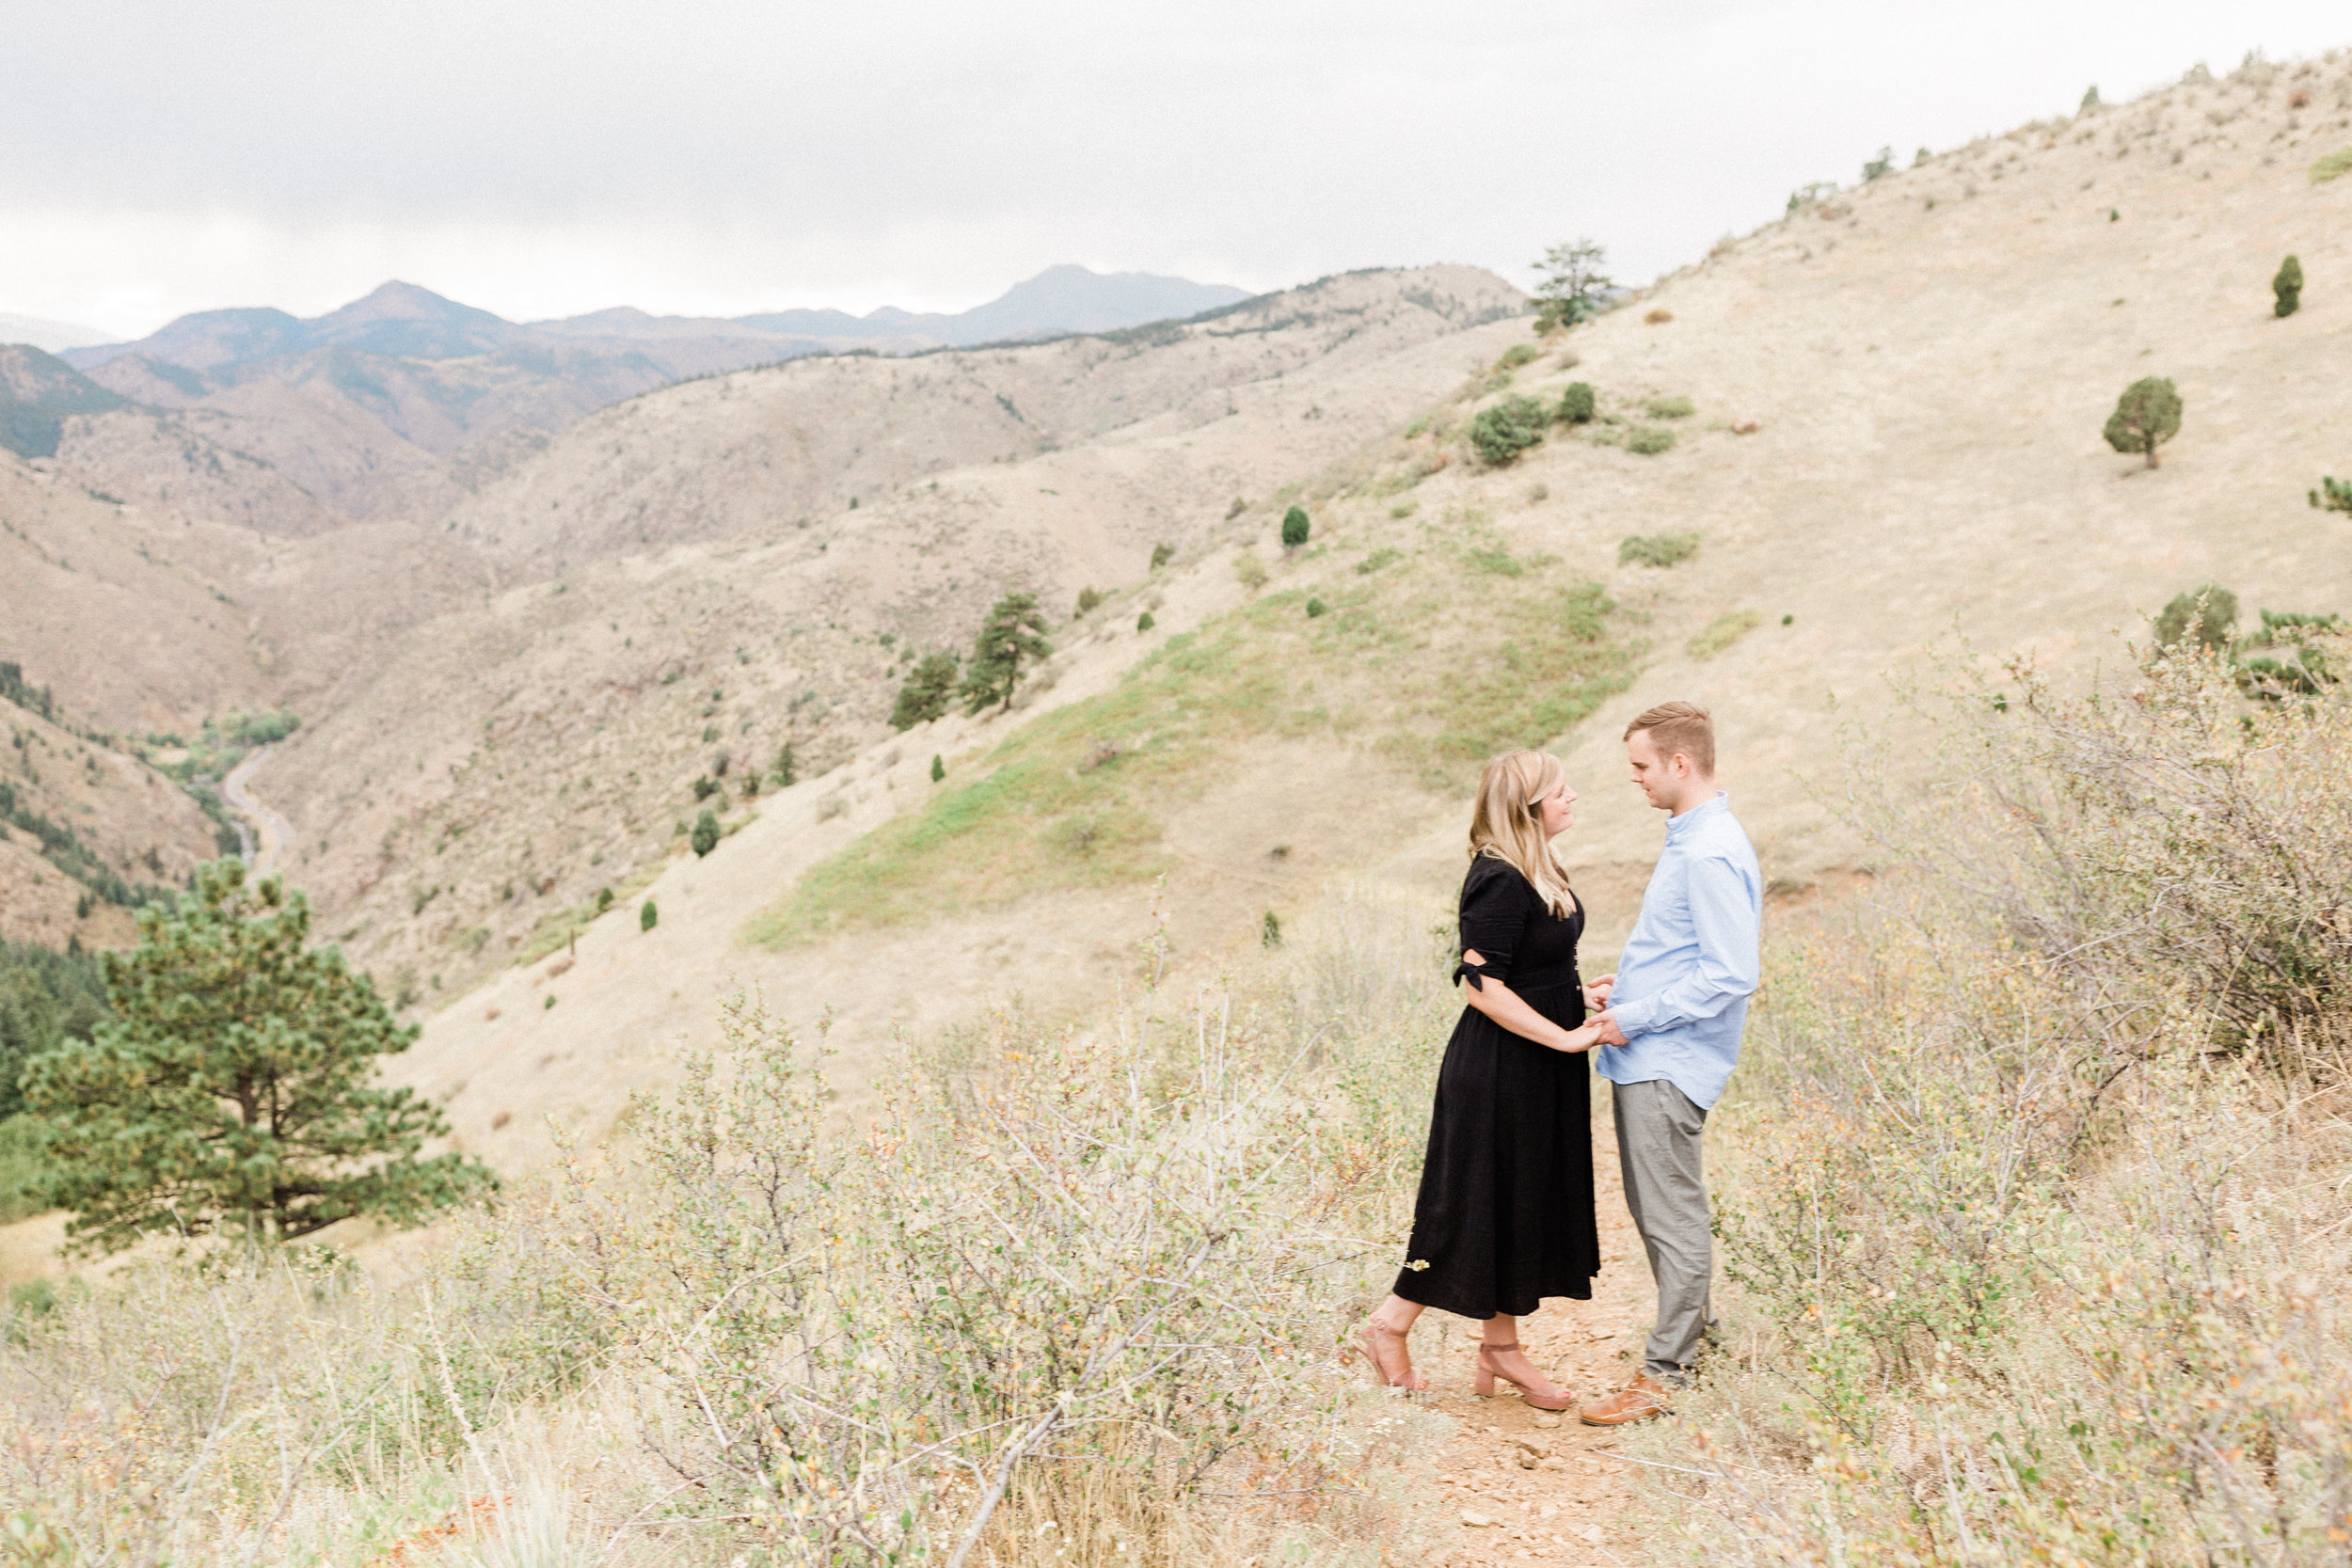 Dorothy_Louise_Photography_Lookout_Mountain_Colorado_Engagement_Gennie_Sean-67.jpg